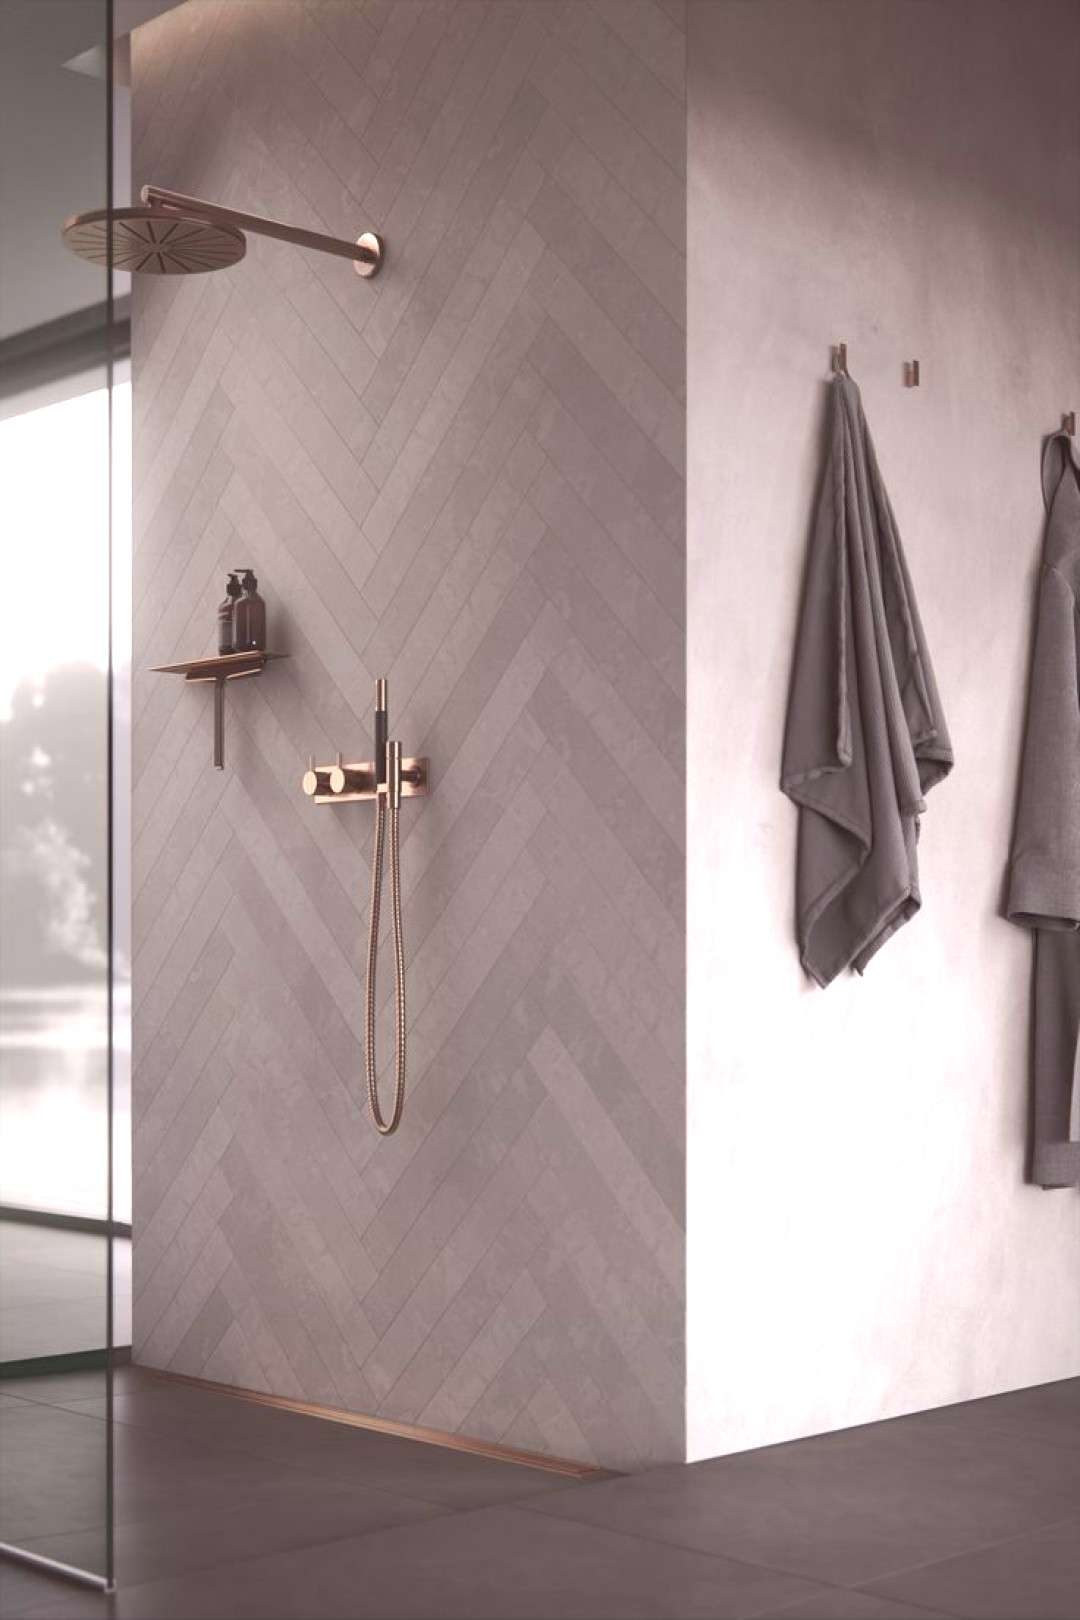 The Best Modern Bathroom Ideas – Are you short of imagination when it comes to modern bathroom id